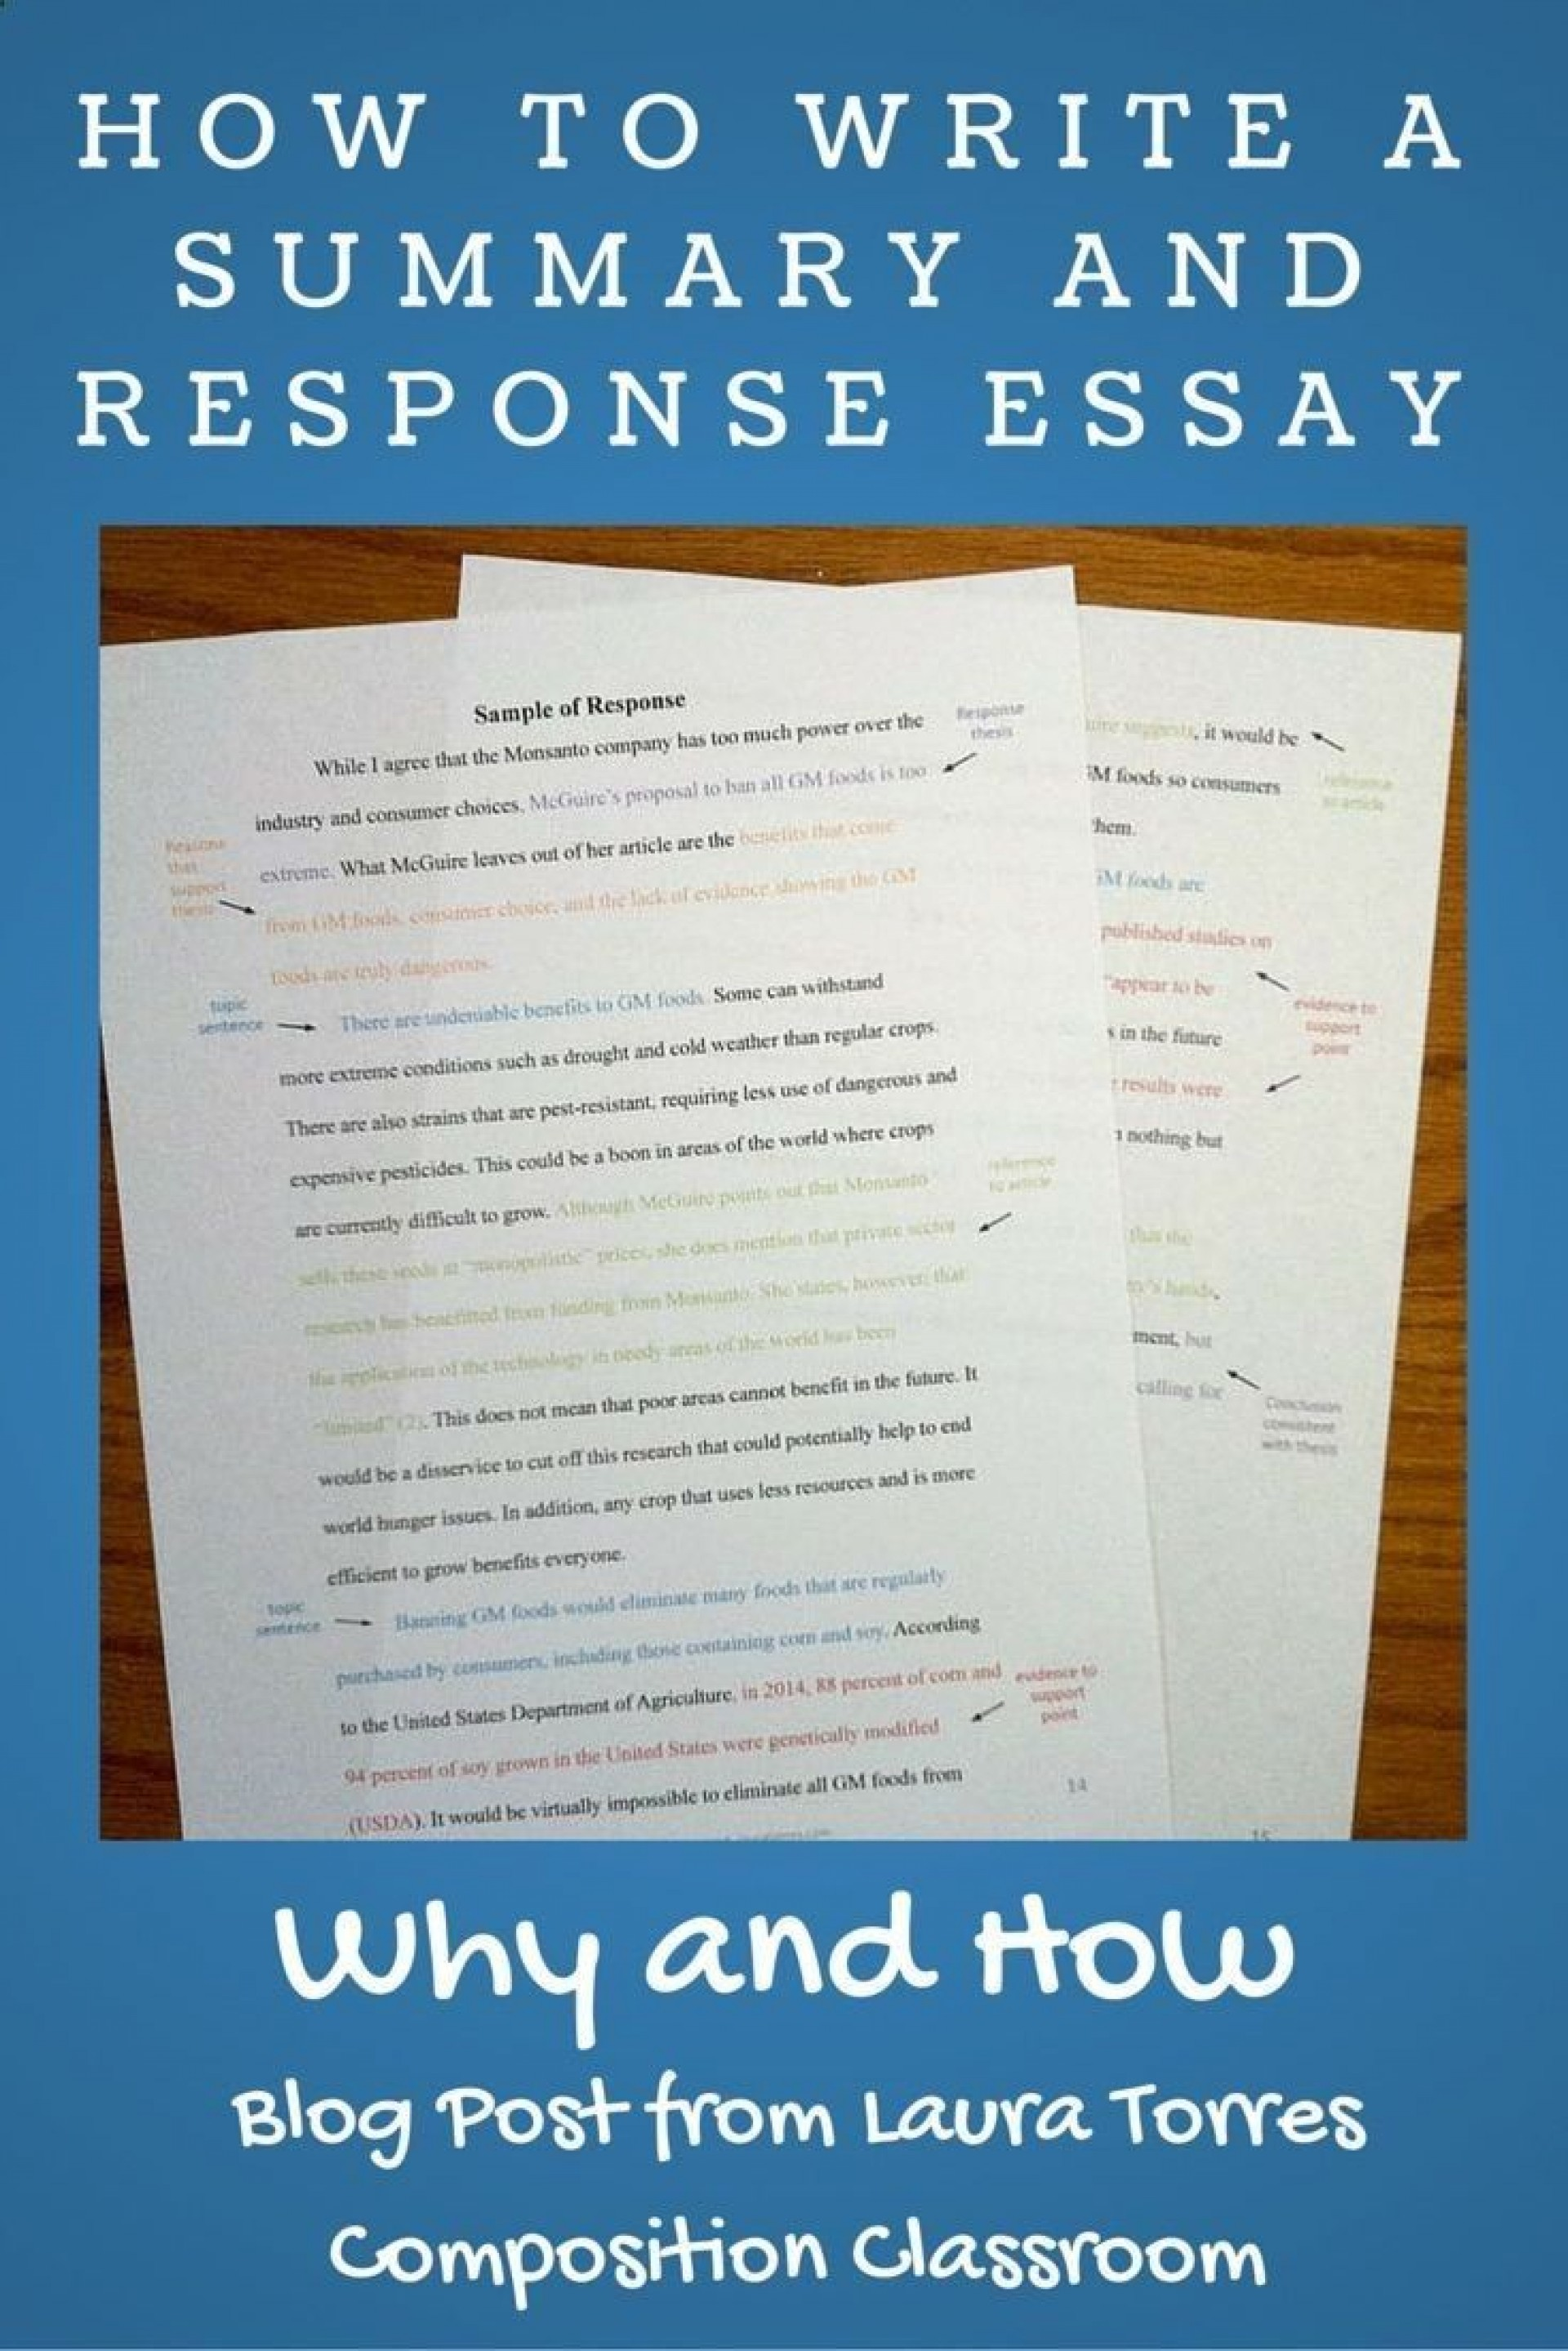 020 Essay Example Summary And Response Stupendous Topics Sample Thesis 1920